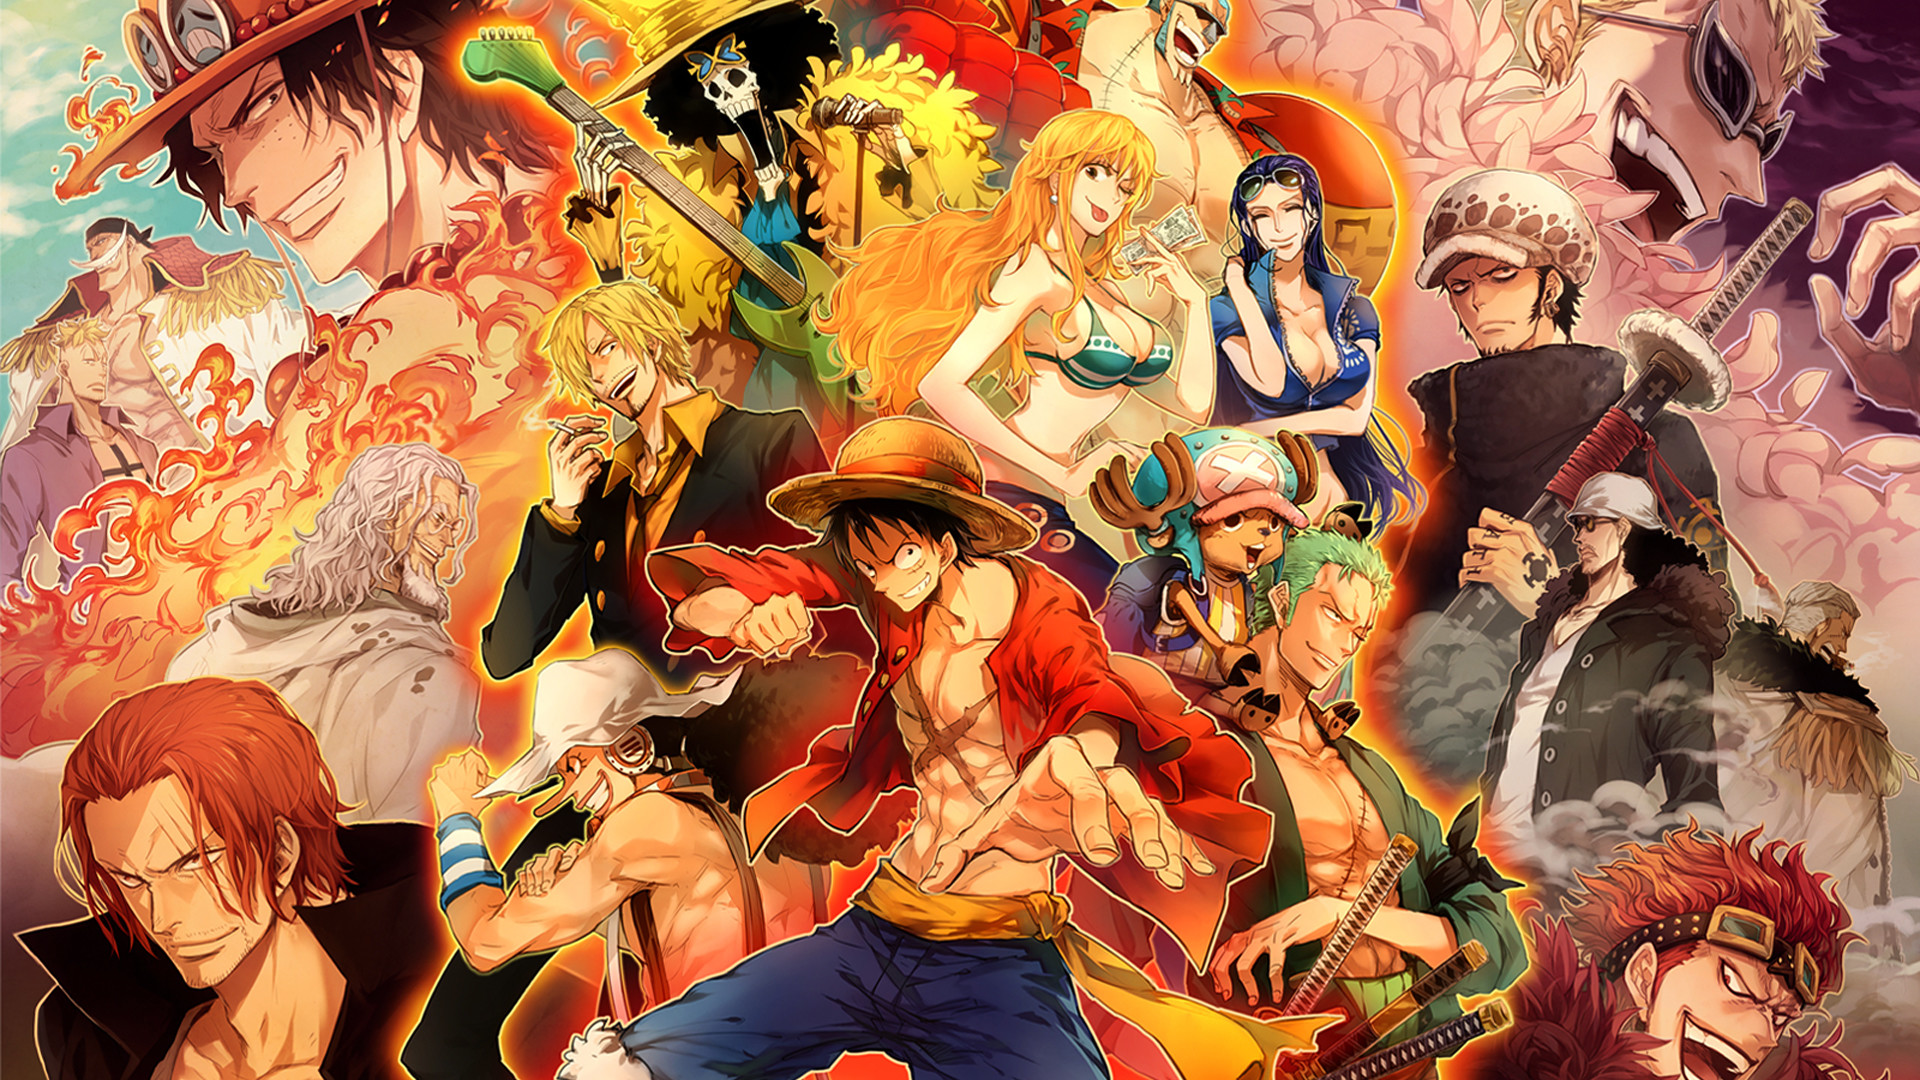 All Character Anime Movie One Piece Wallpaper For Desktop HD #26820929